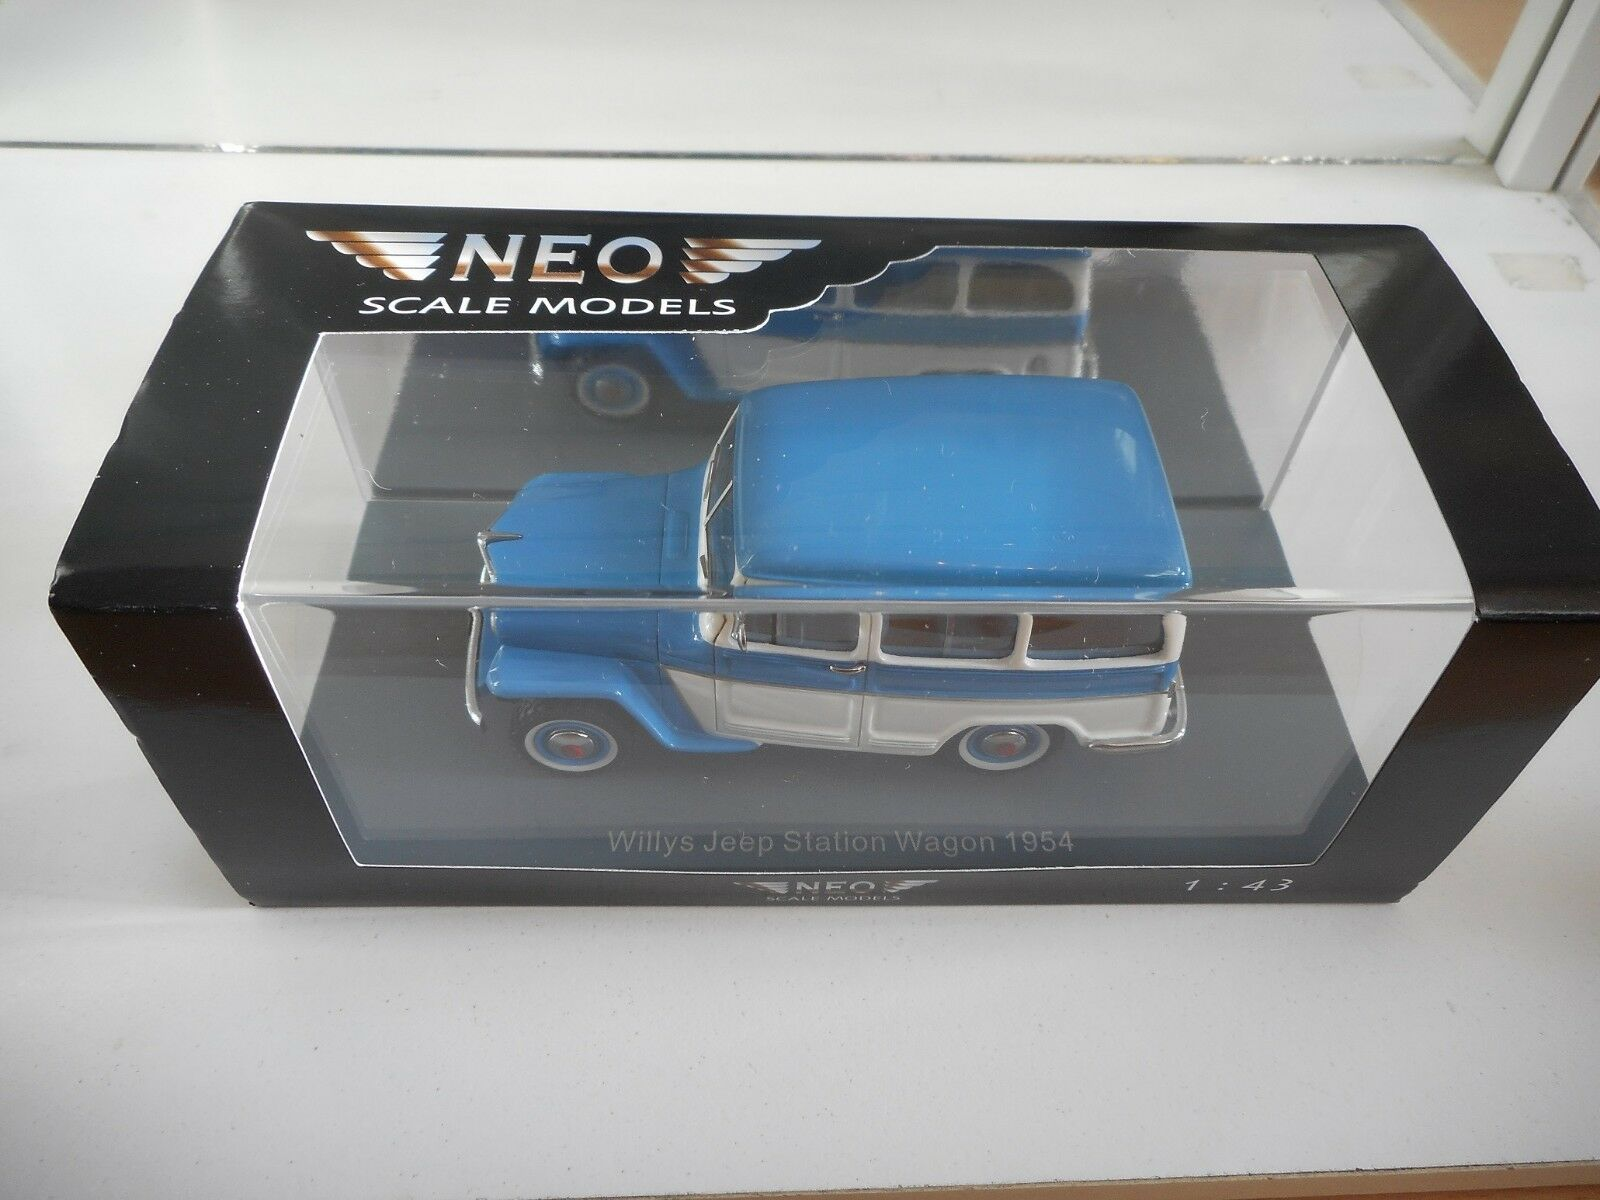 Neo Scale Models Willys Jeep Station Wagon 1954 in blu bianca on 1 43 in Box